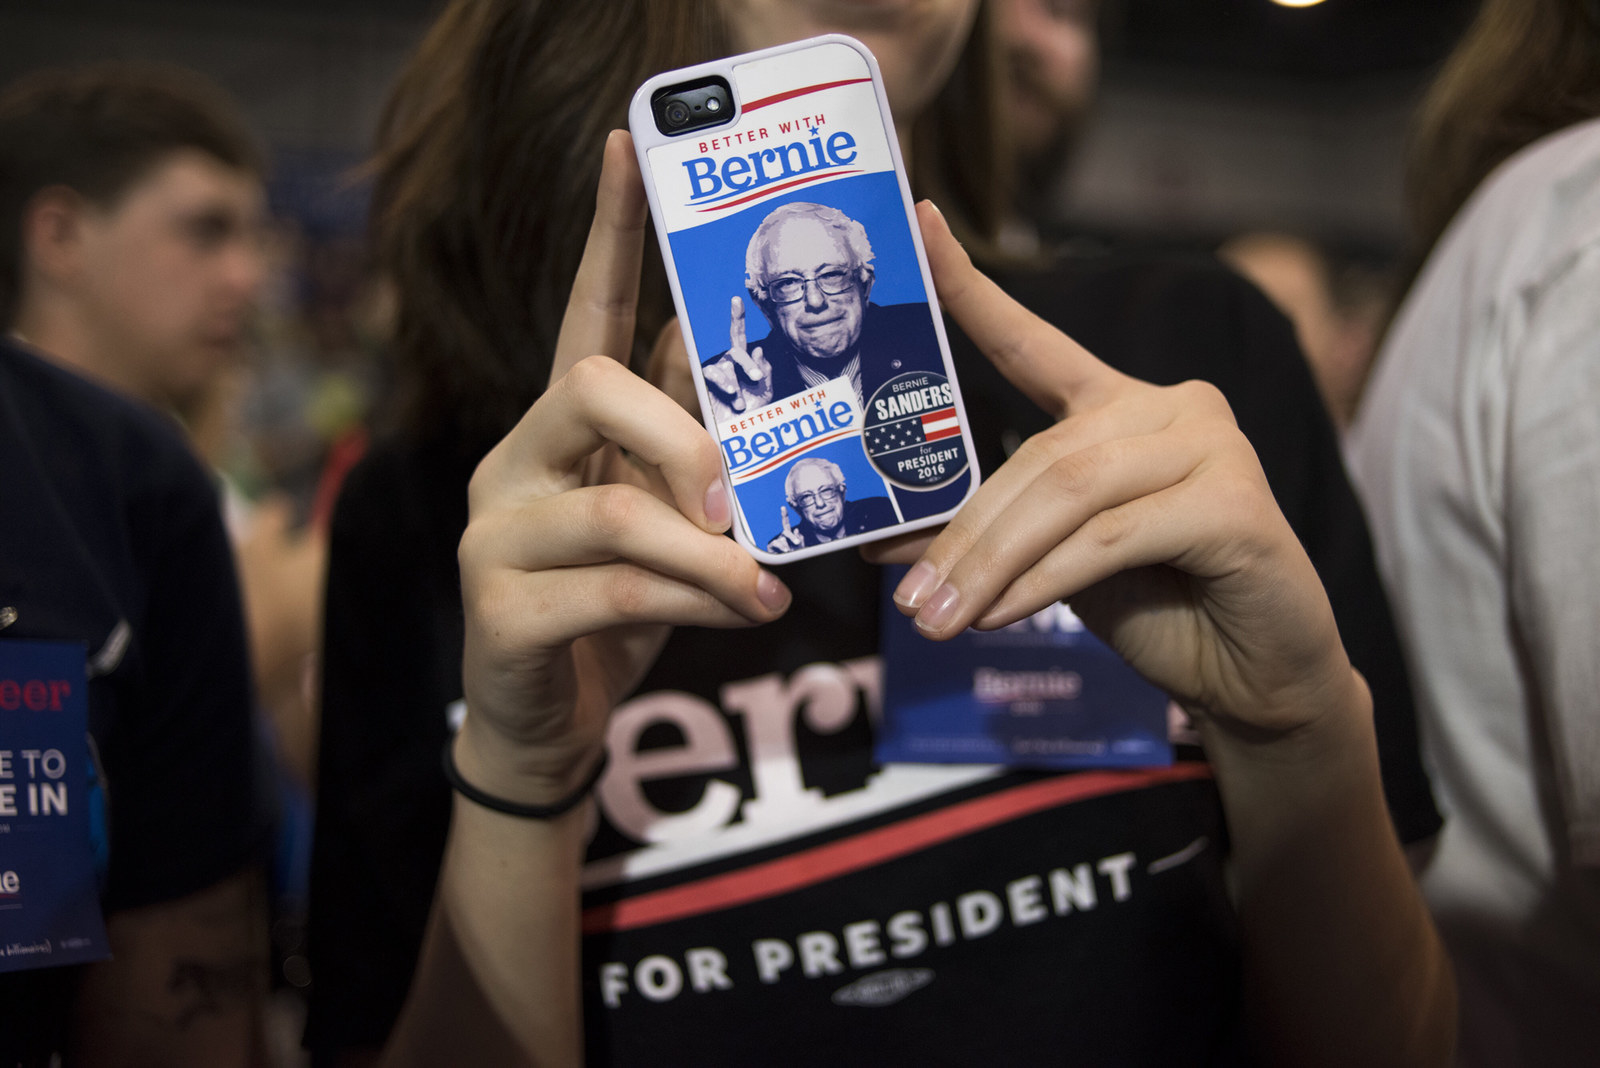 A Sanders-themed phone in 2016.